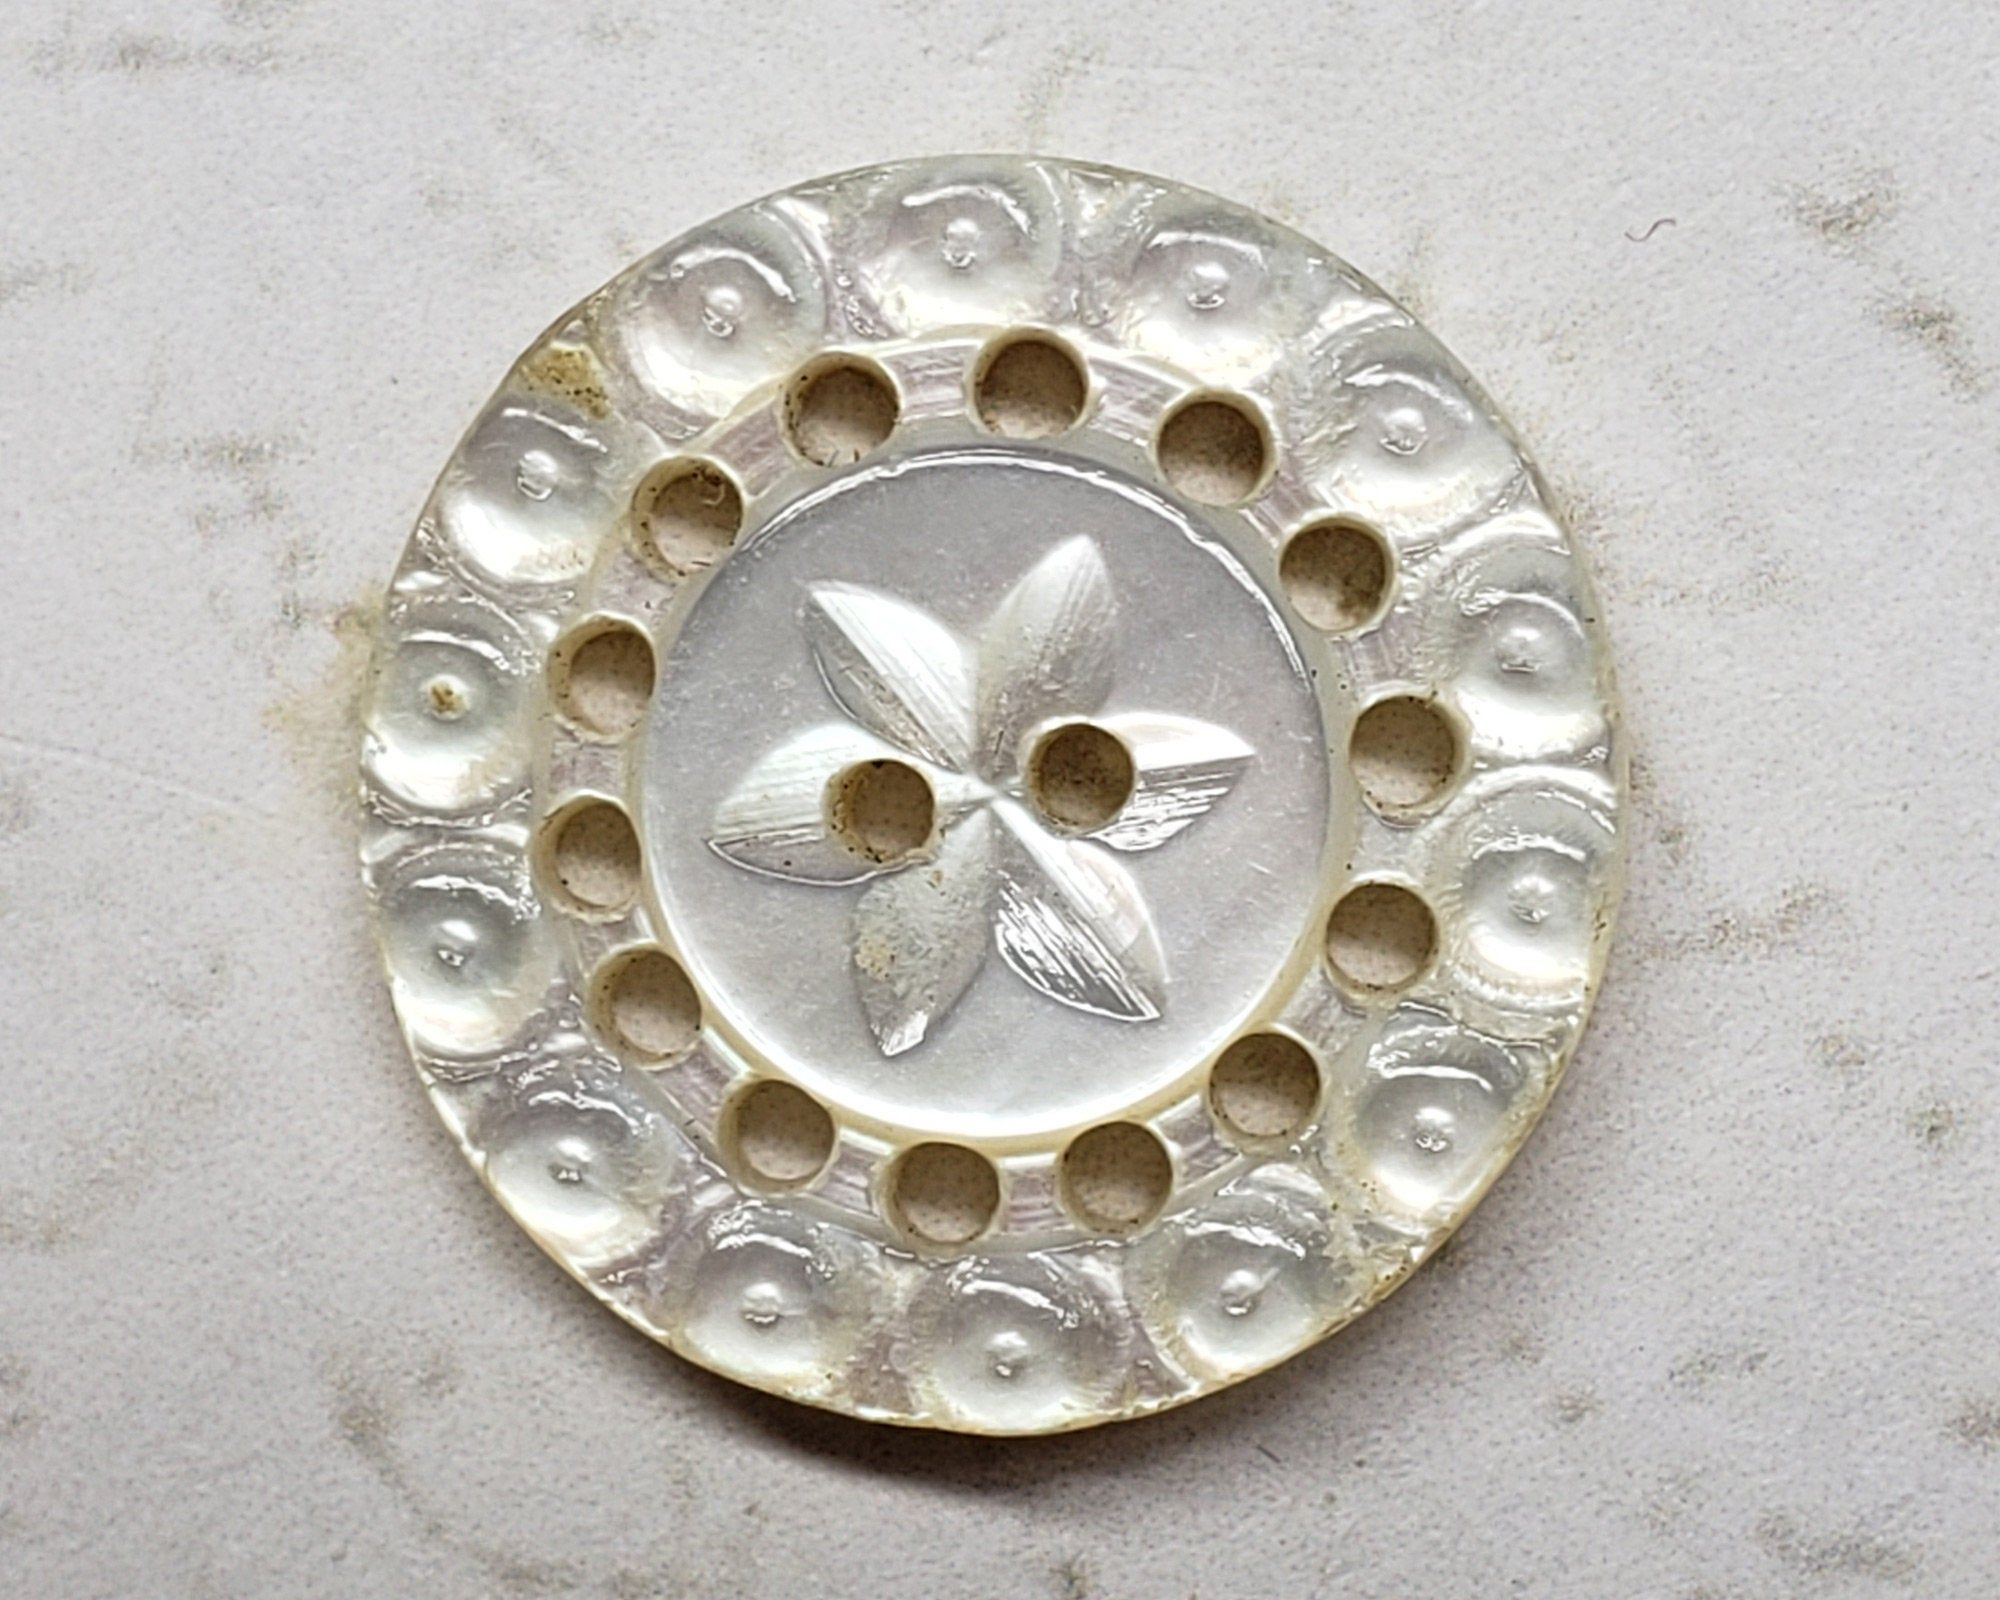 Beautifully Carved Mother of Pearl Button; Iridescent White Pearl; Large Antique Shell Button; 4 Hole Sew Thru